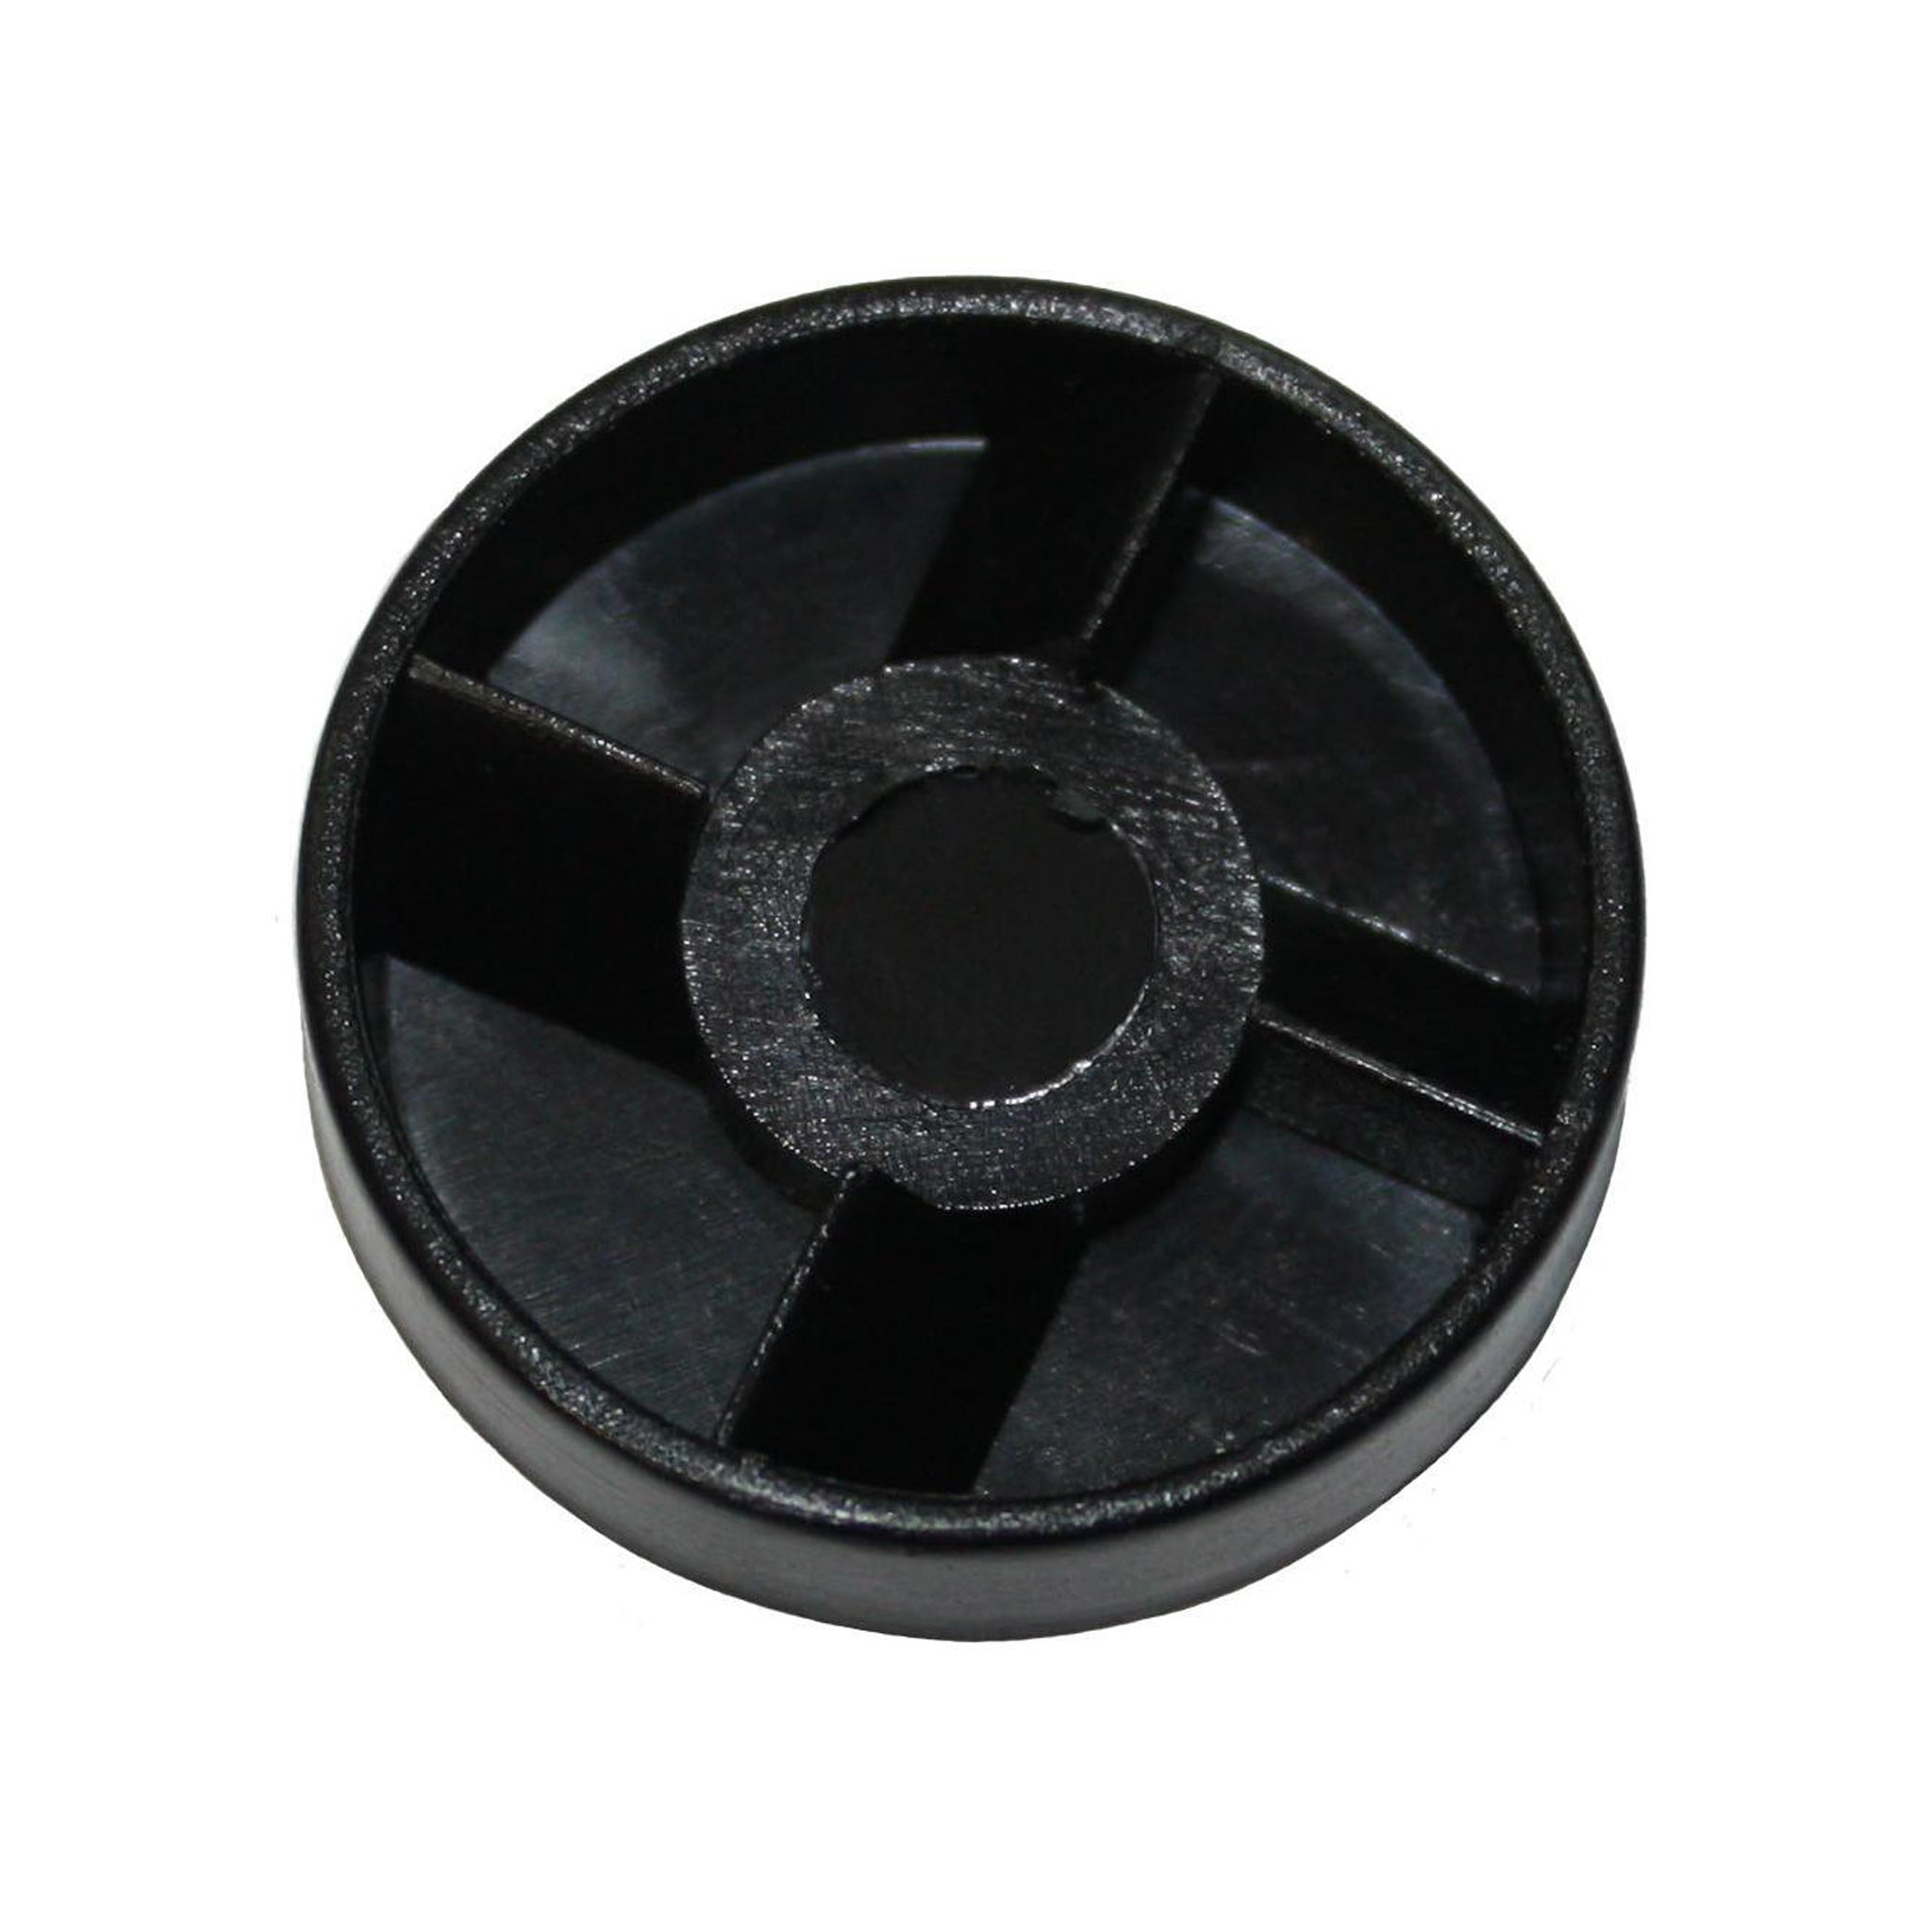 Replacement motor clutch for the Personal Blender®. This is the black piece that sits inside your motor base.